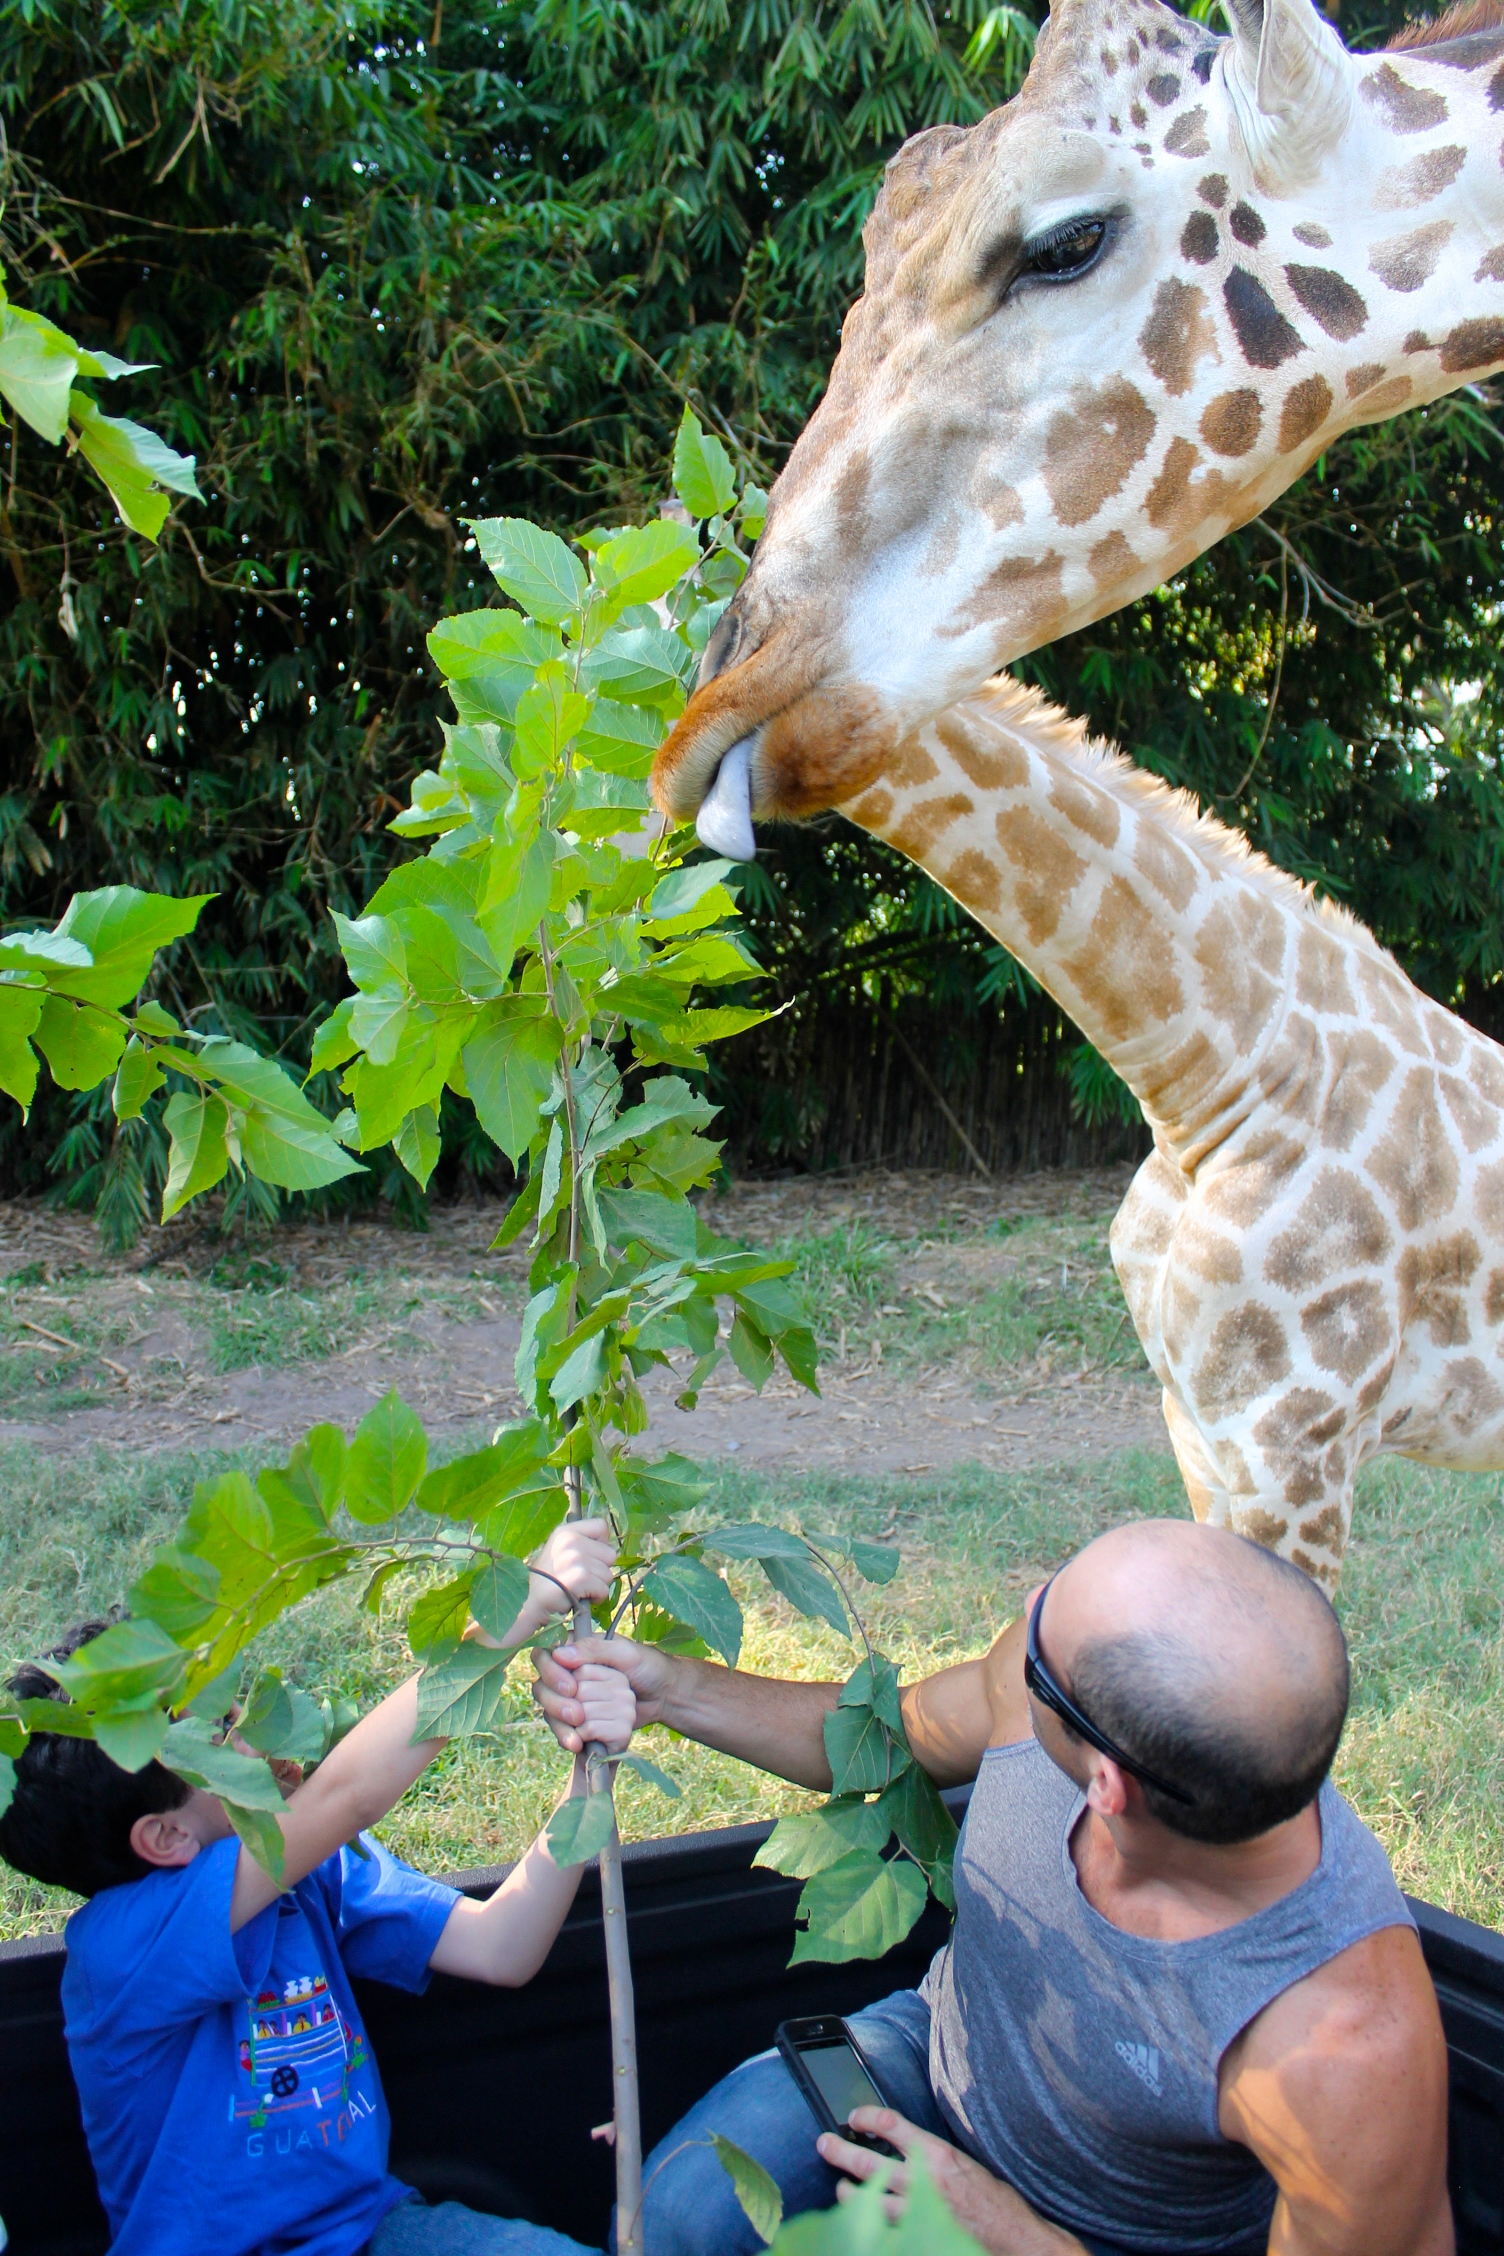 feeding giraffes at Auto Safari Chapin